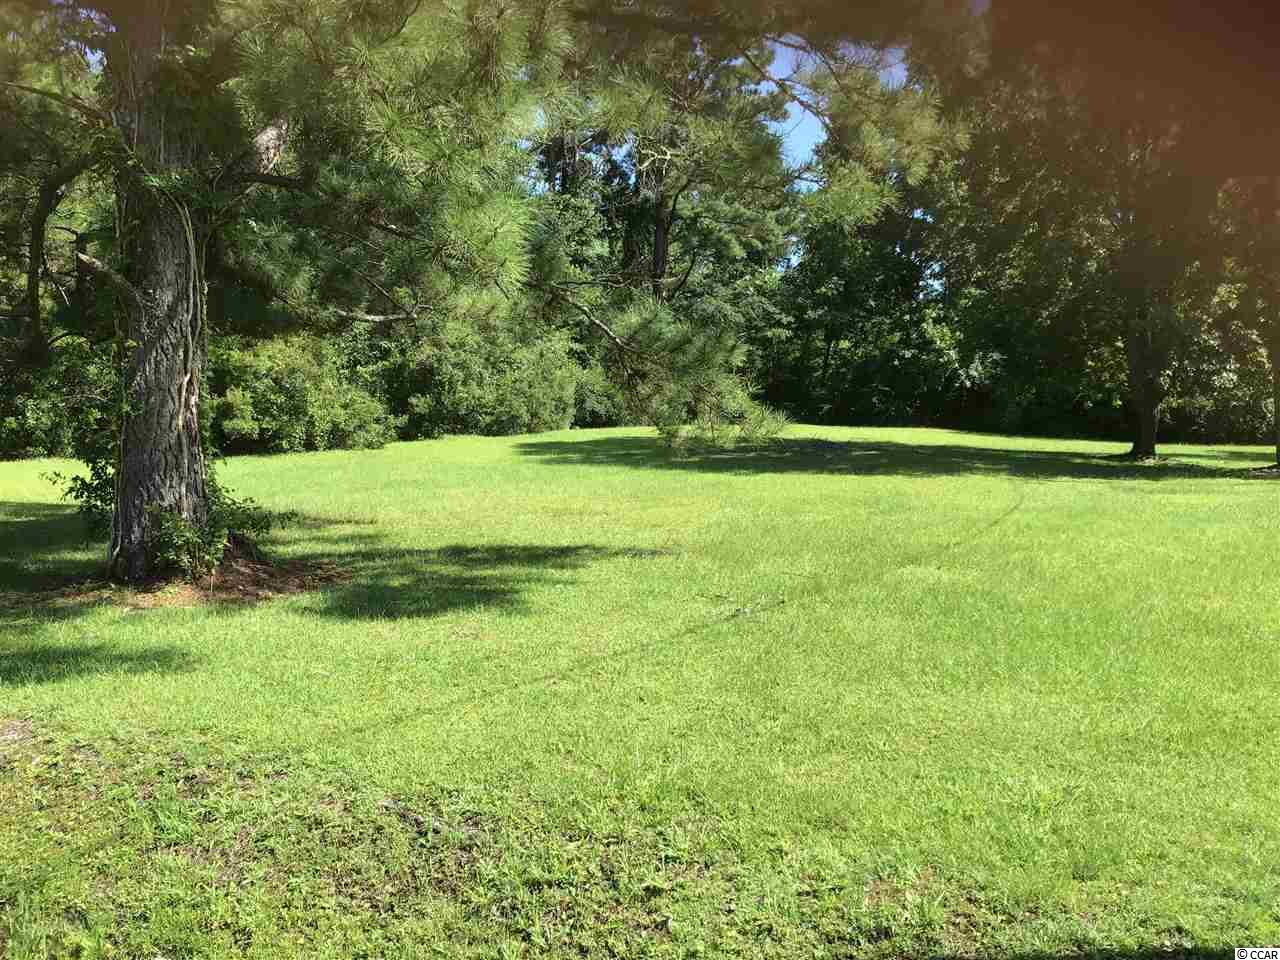 Great opportunity to own large half acre lot just west of the Intracoastal Waterway in the unincorporated part of Myrtle Beach. Plenty of room for your dream home. Location is close to shopping, medical, entertainment, and the beach, while feeling like you live in the country.